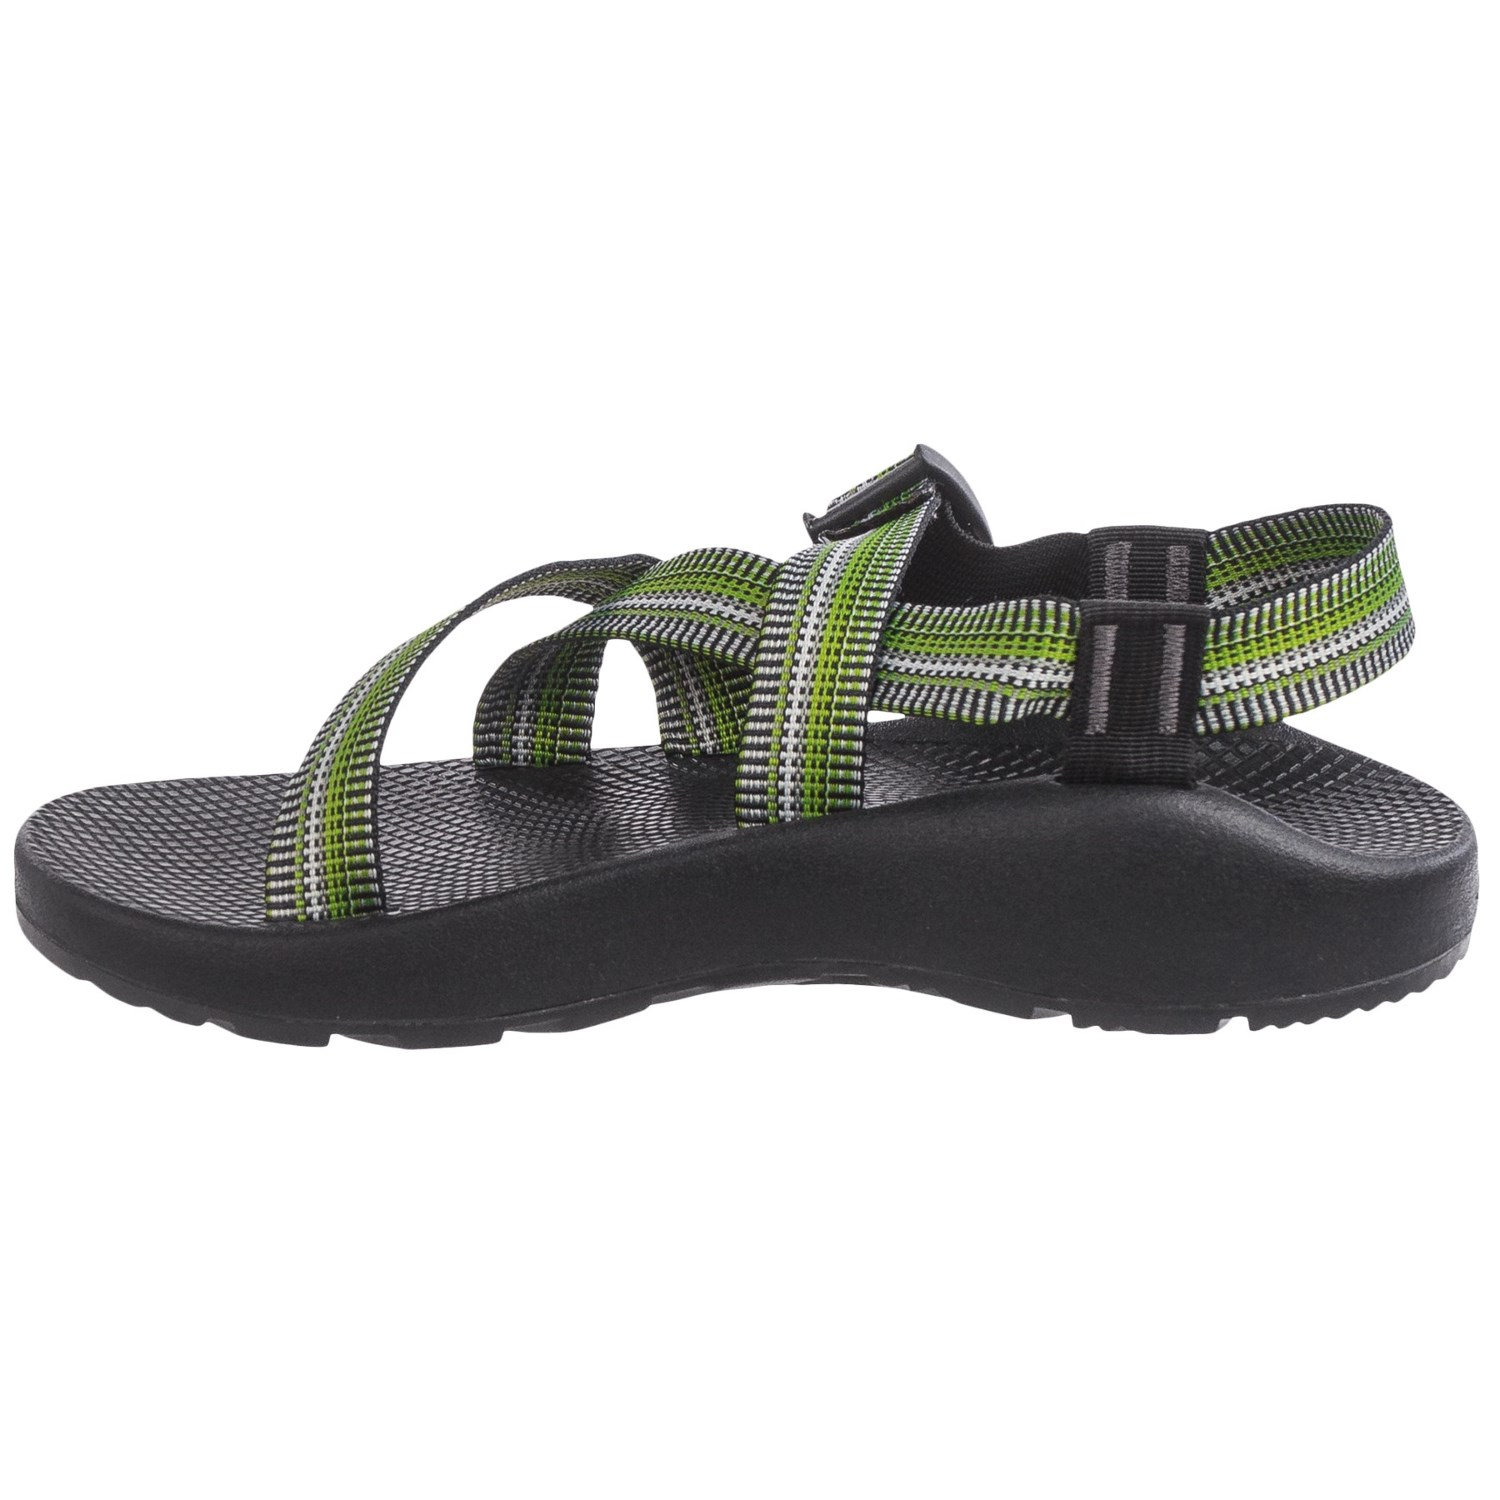 119142d01f9c Chaco Z 1® Classic Sport Sandals (For Men) - Save 42%